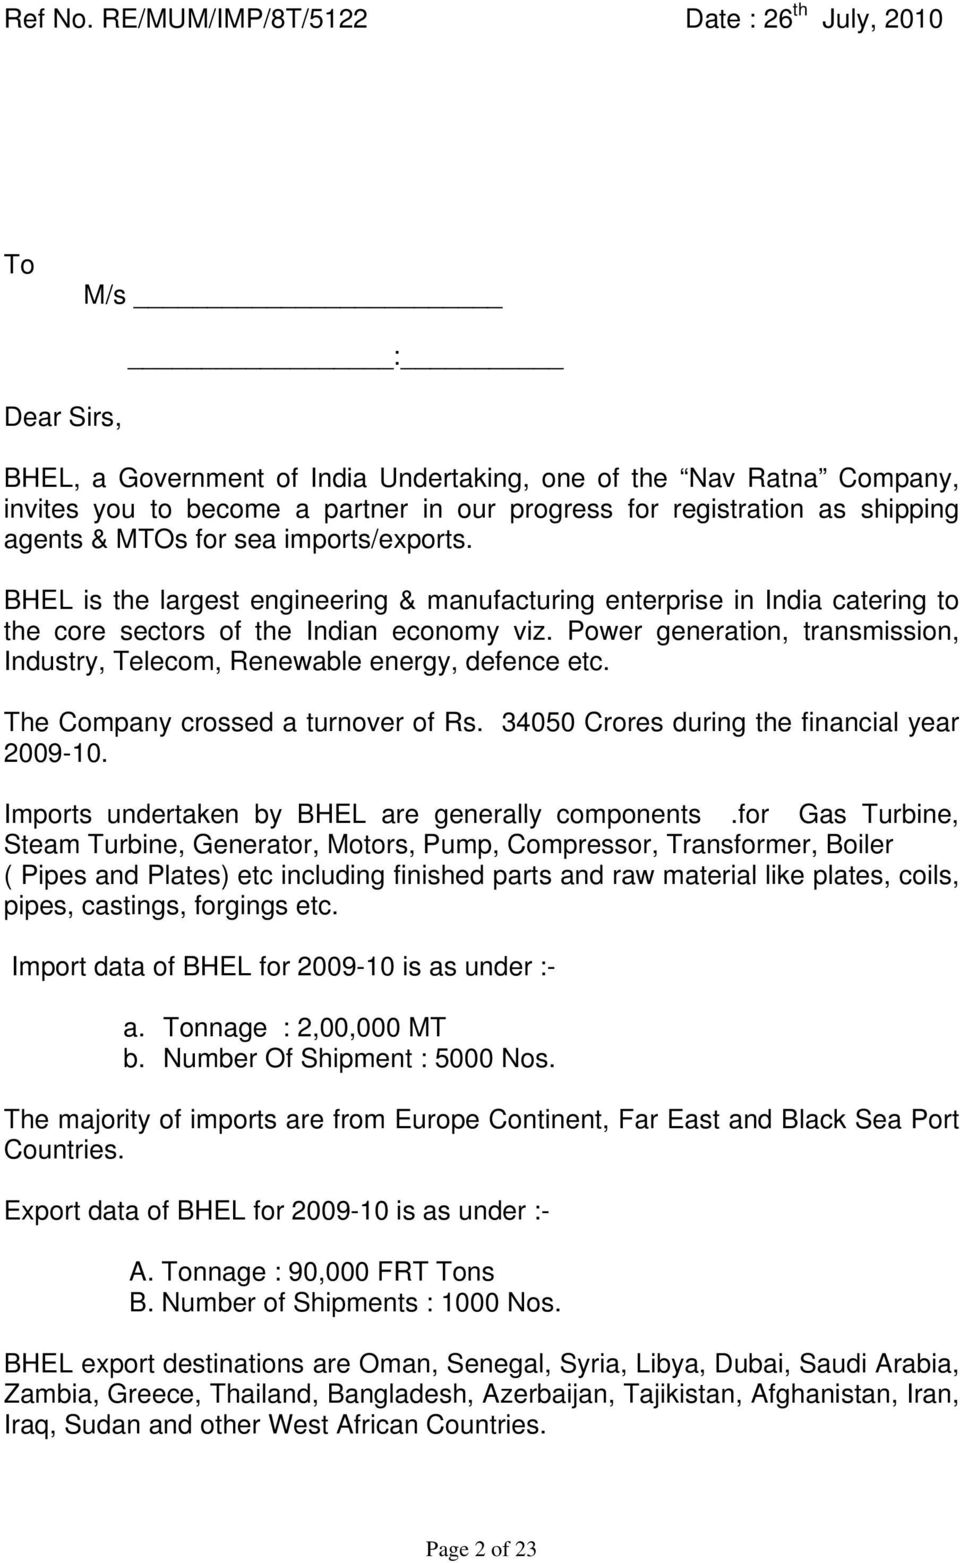 REGISTRATION OF SHIPPING AGENTS & MTO s - PDF